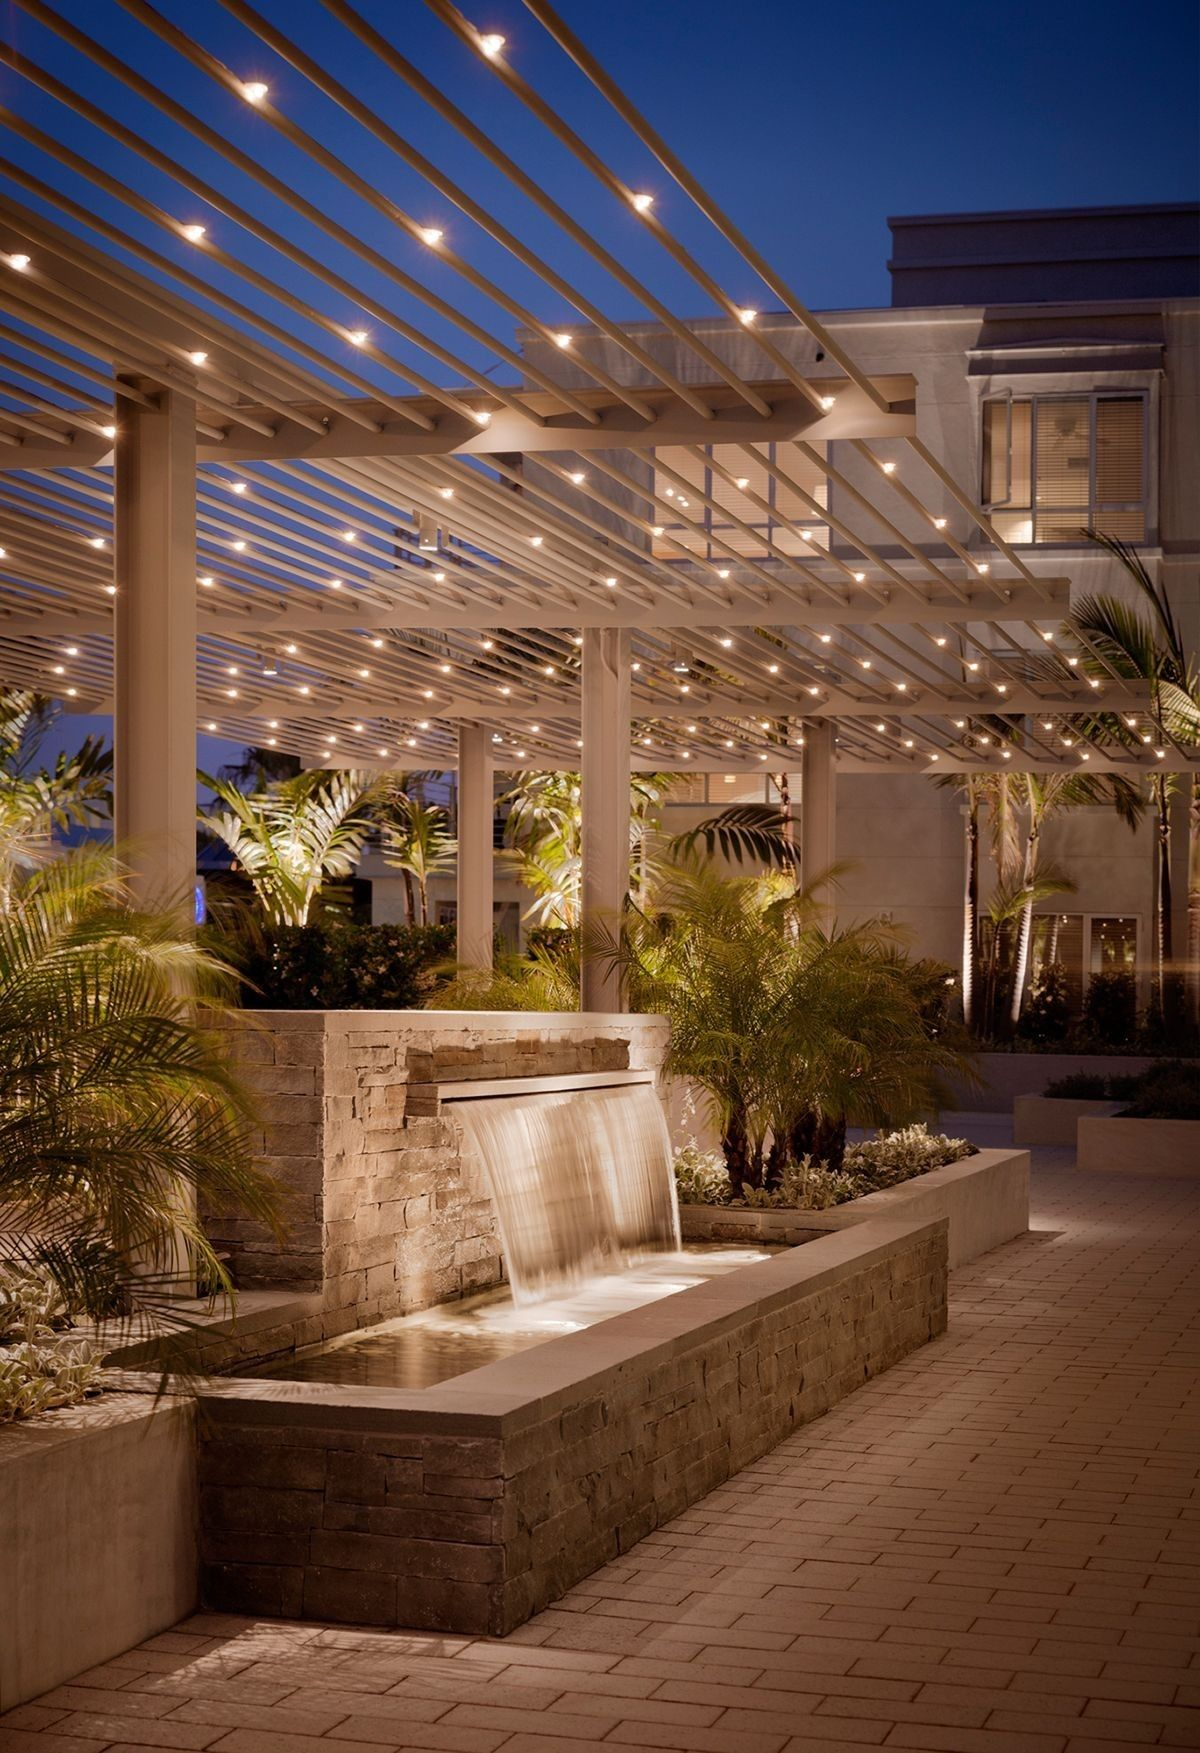 Pin by Mike on House Designs, Ideas | Pinterest | Landscaping ...